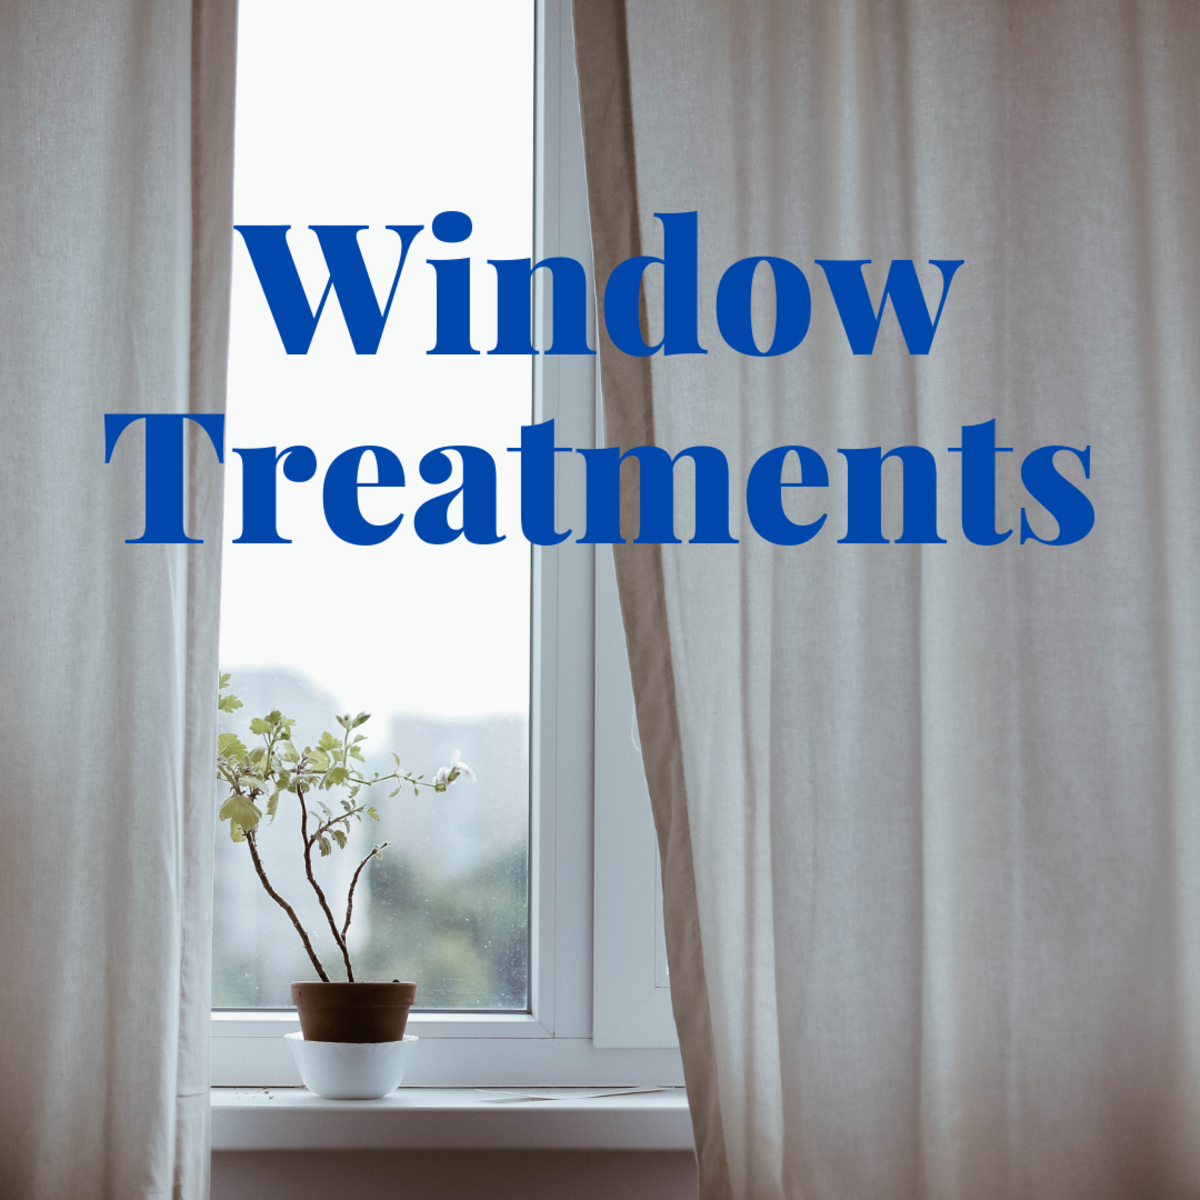 Common Drapery Terminology: Basic Window Treatments Explained